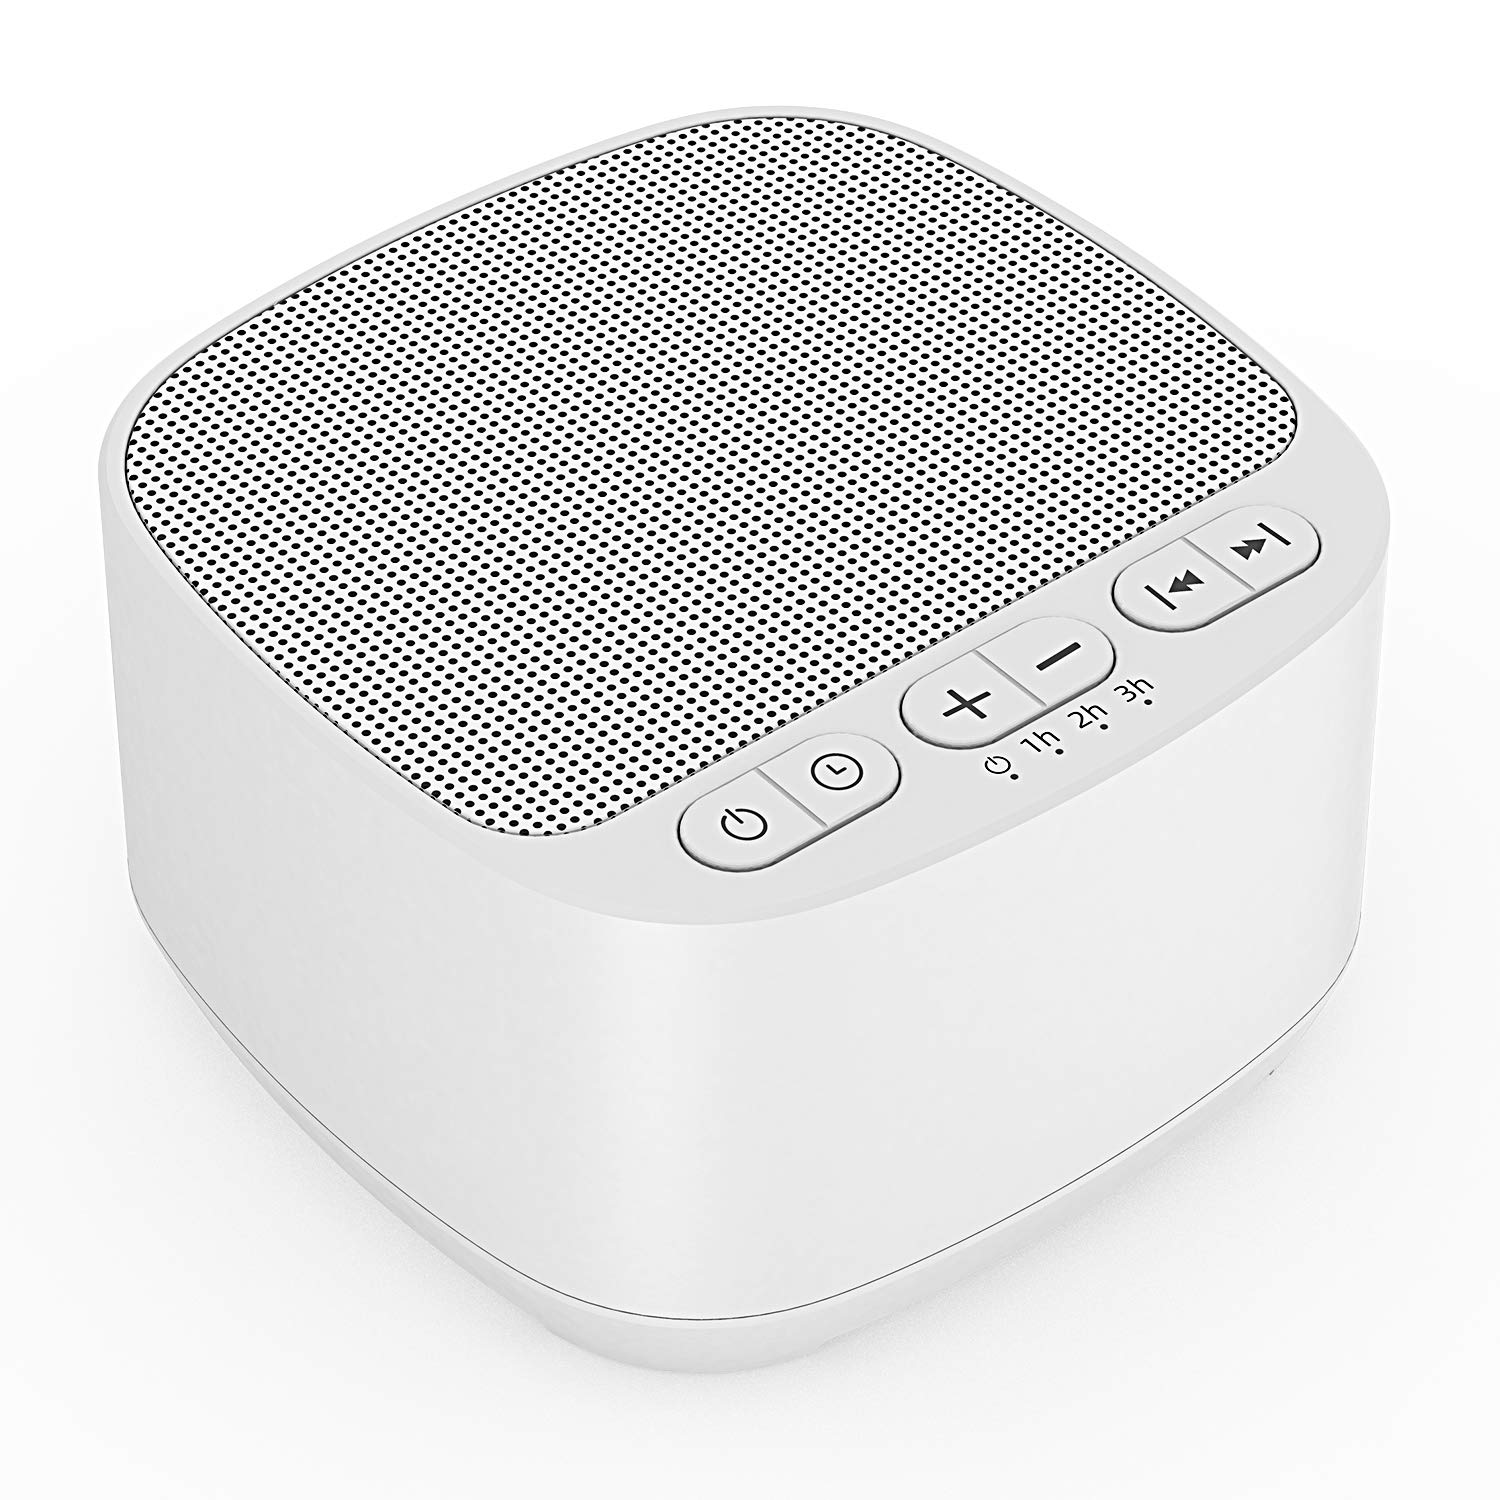 White Noise Machine, Sleep Sound Machine with 40 High Fidelity Sounds - White Noise/Fan/Nature/Ambient Sounds, Baby Sound Machine, Sleep Sound Therapy for Home (3 Auto-Off Timer)